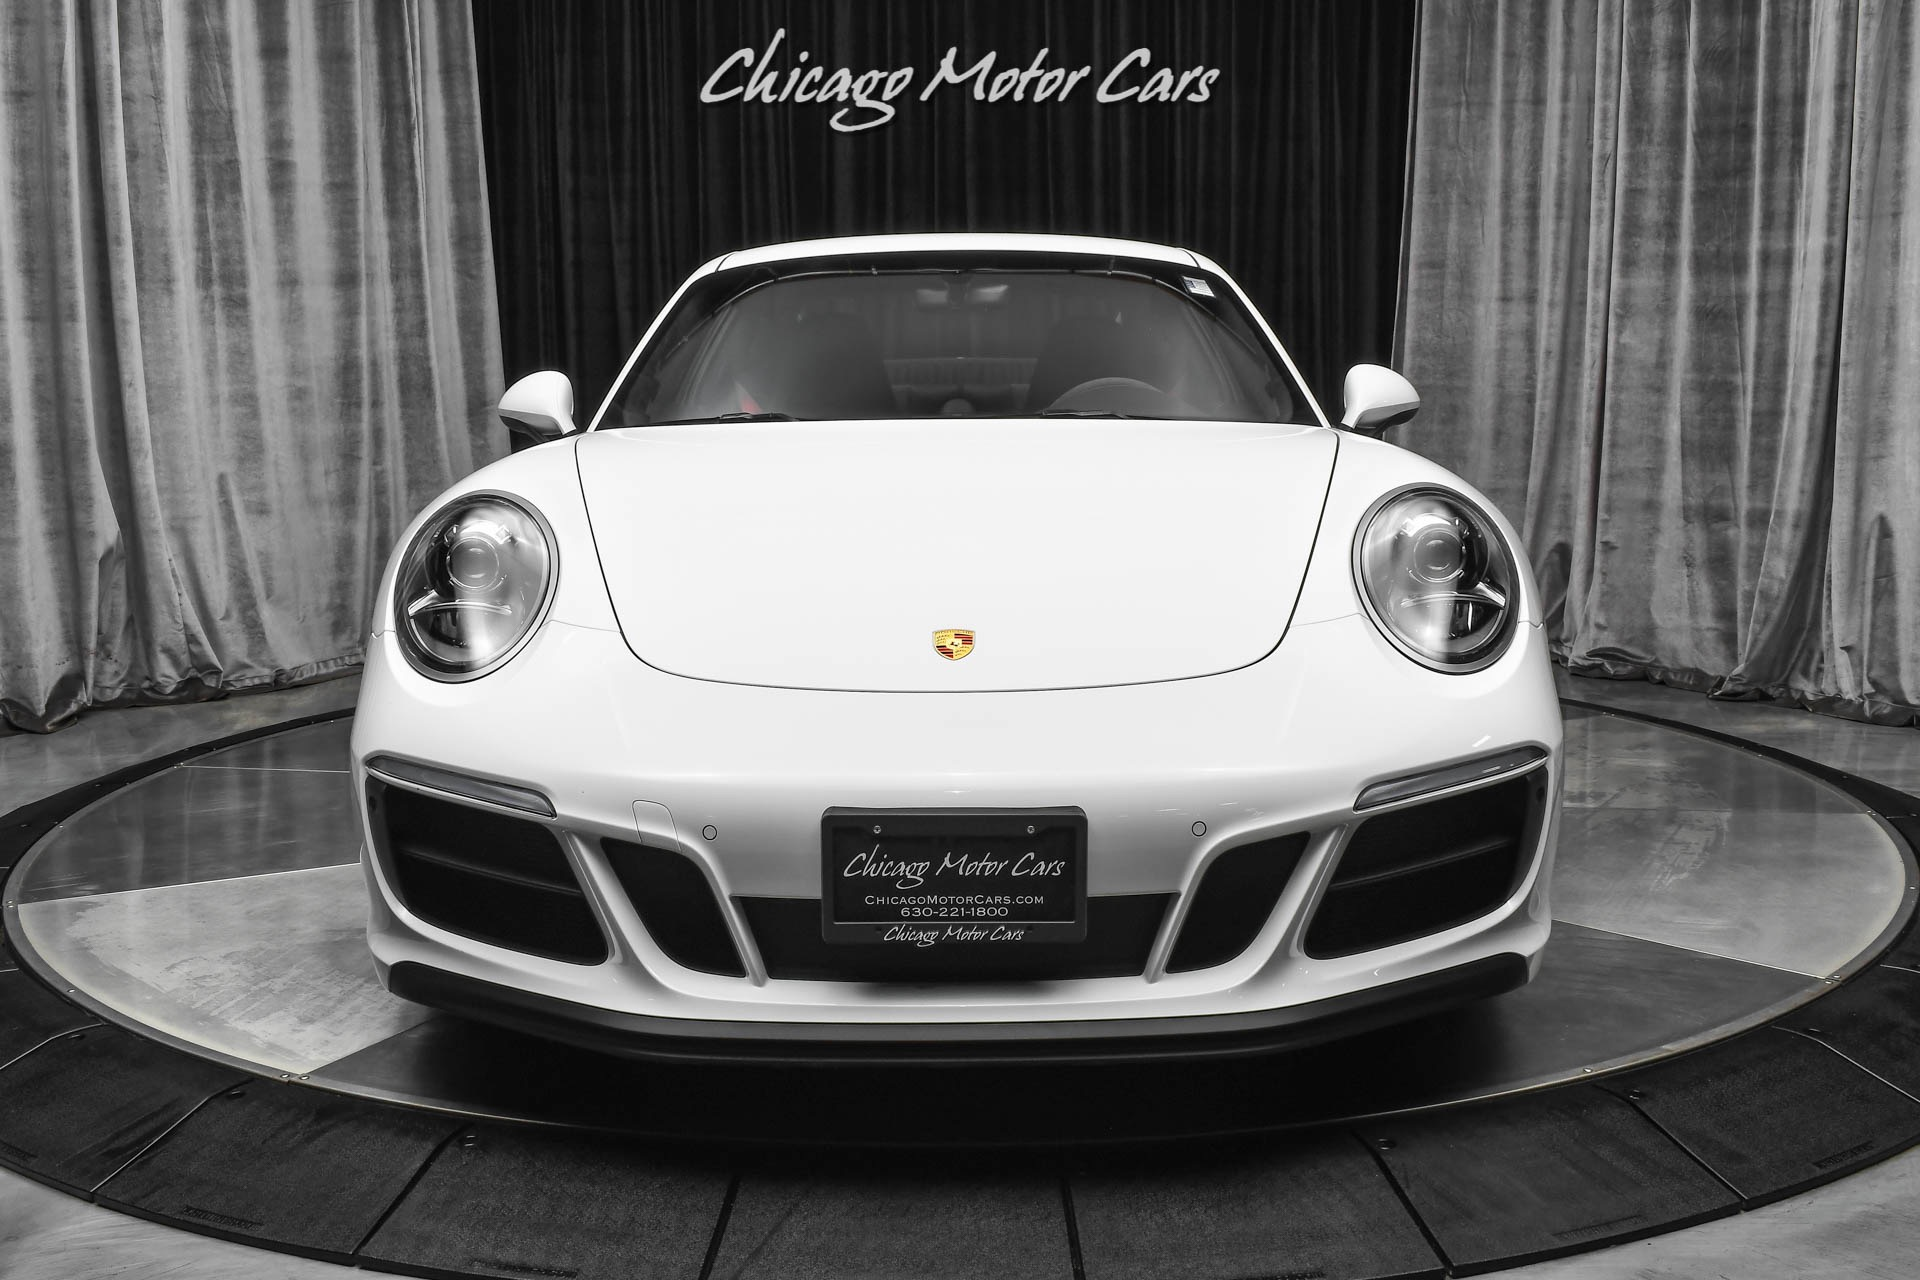 Used-2019-Porsche-911-Carrera-GTS-Coupe-White-HOT-FABSPEED-TUNE-Only-9k-Miles